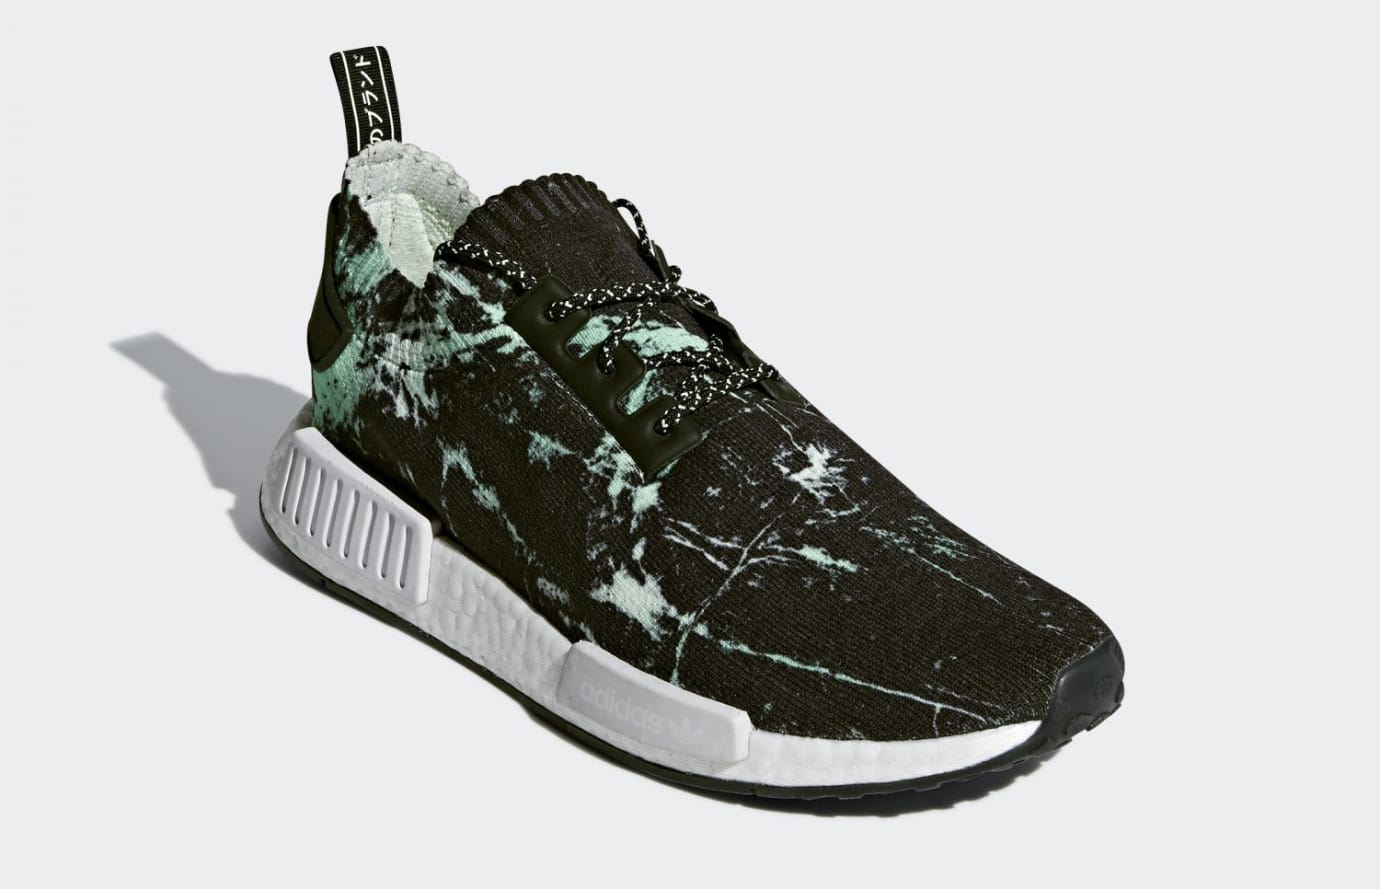 wholesale dealer 69933 d43e8 Image via Adidas adidas-nmd-r1-green-marble-release-date-bb7996-